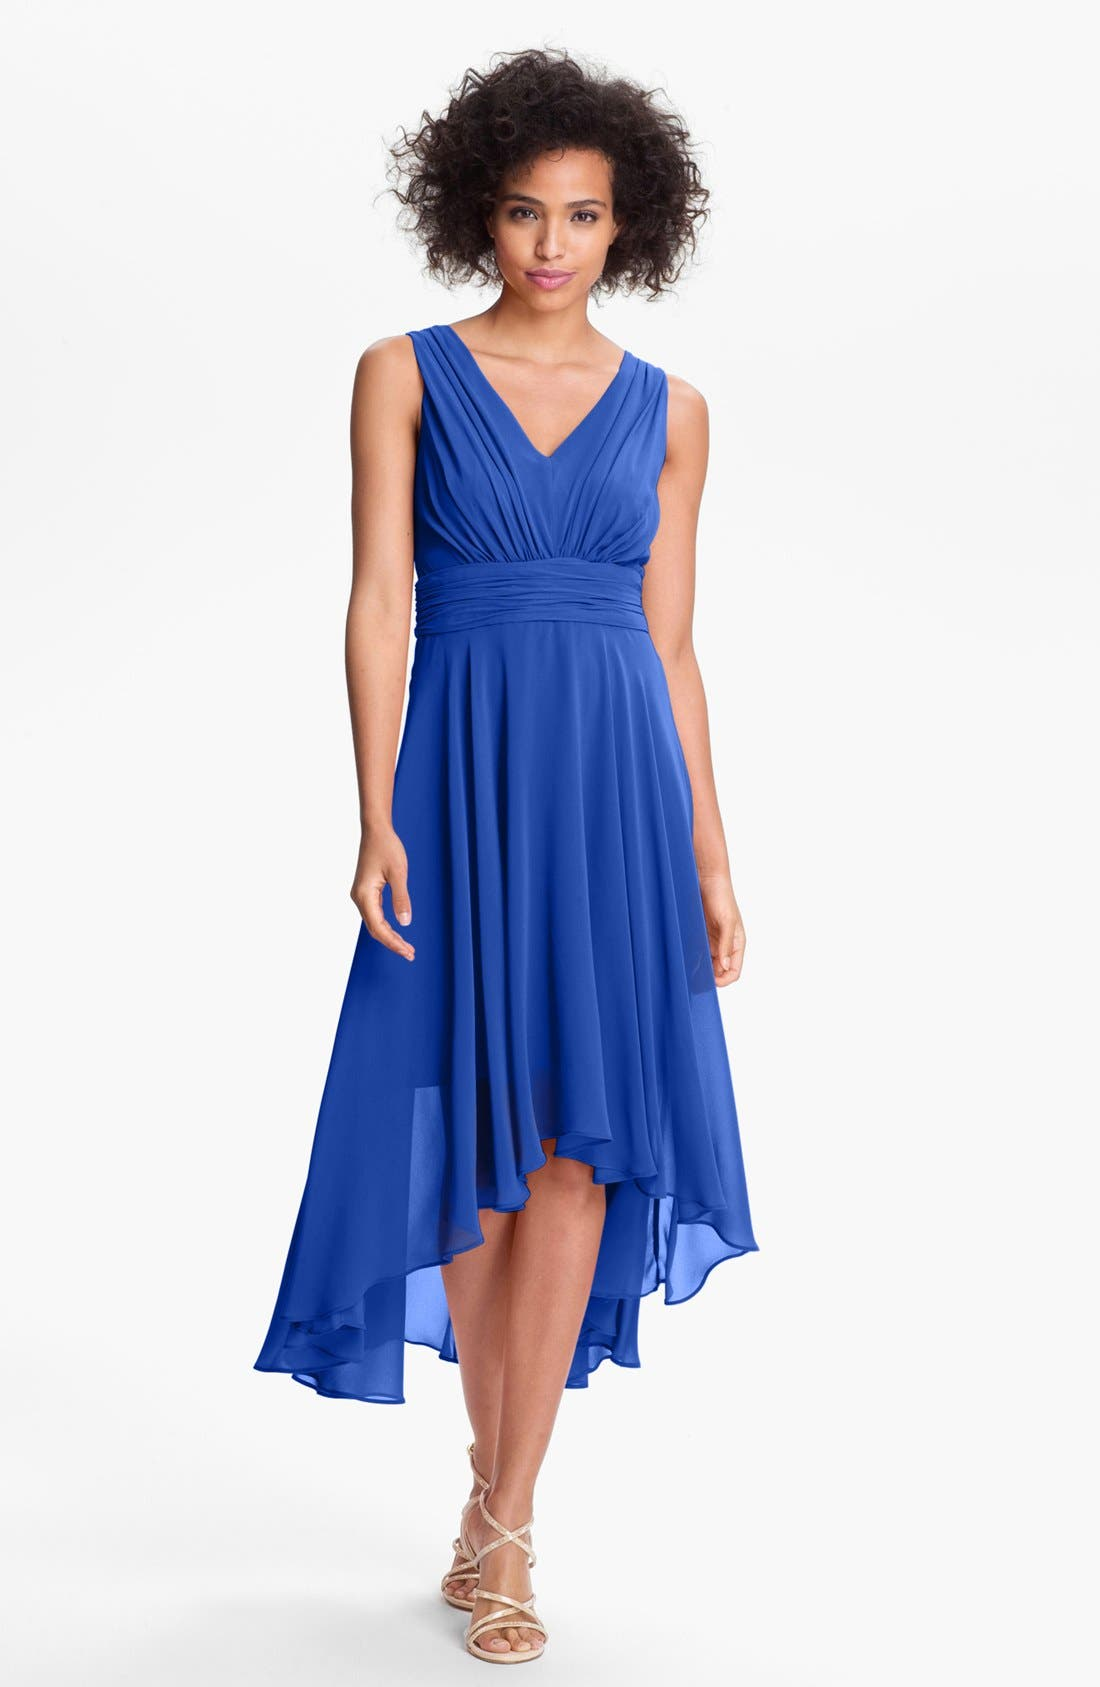 Main Image - Ivy & Blu High/Low Chiffon Dress (Regular & Petite)